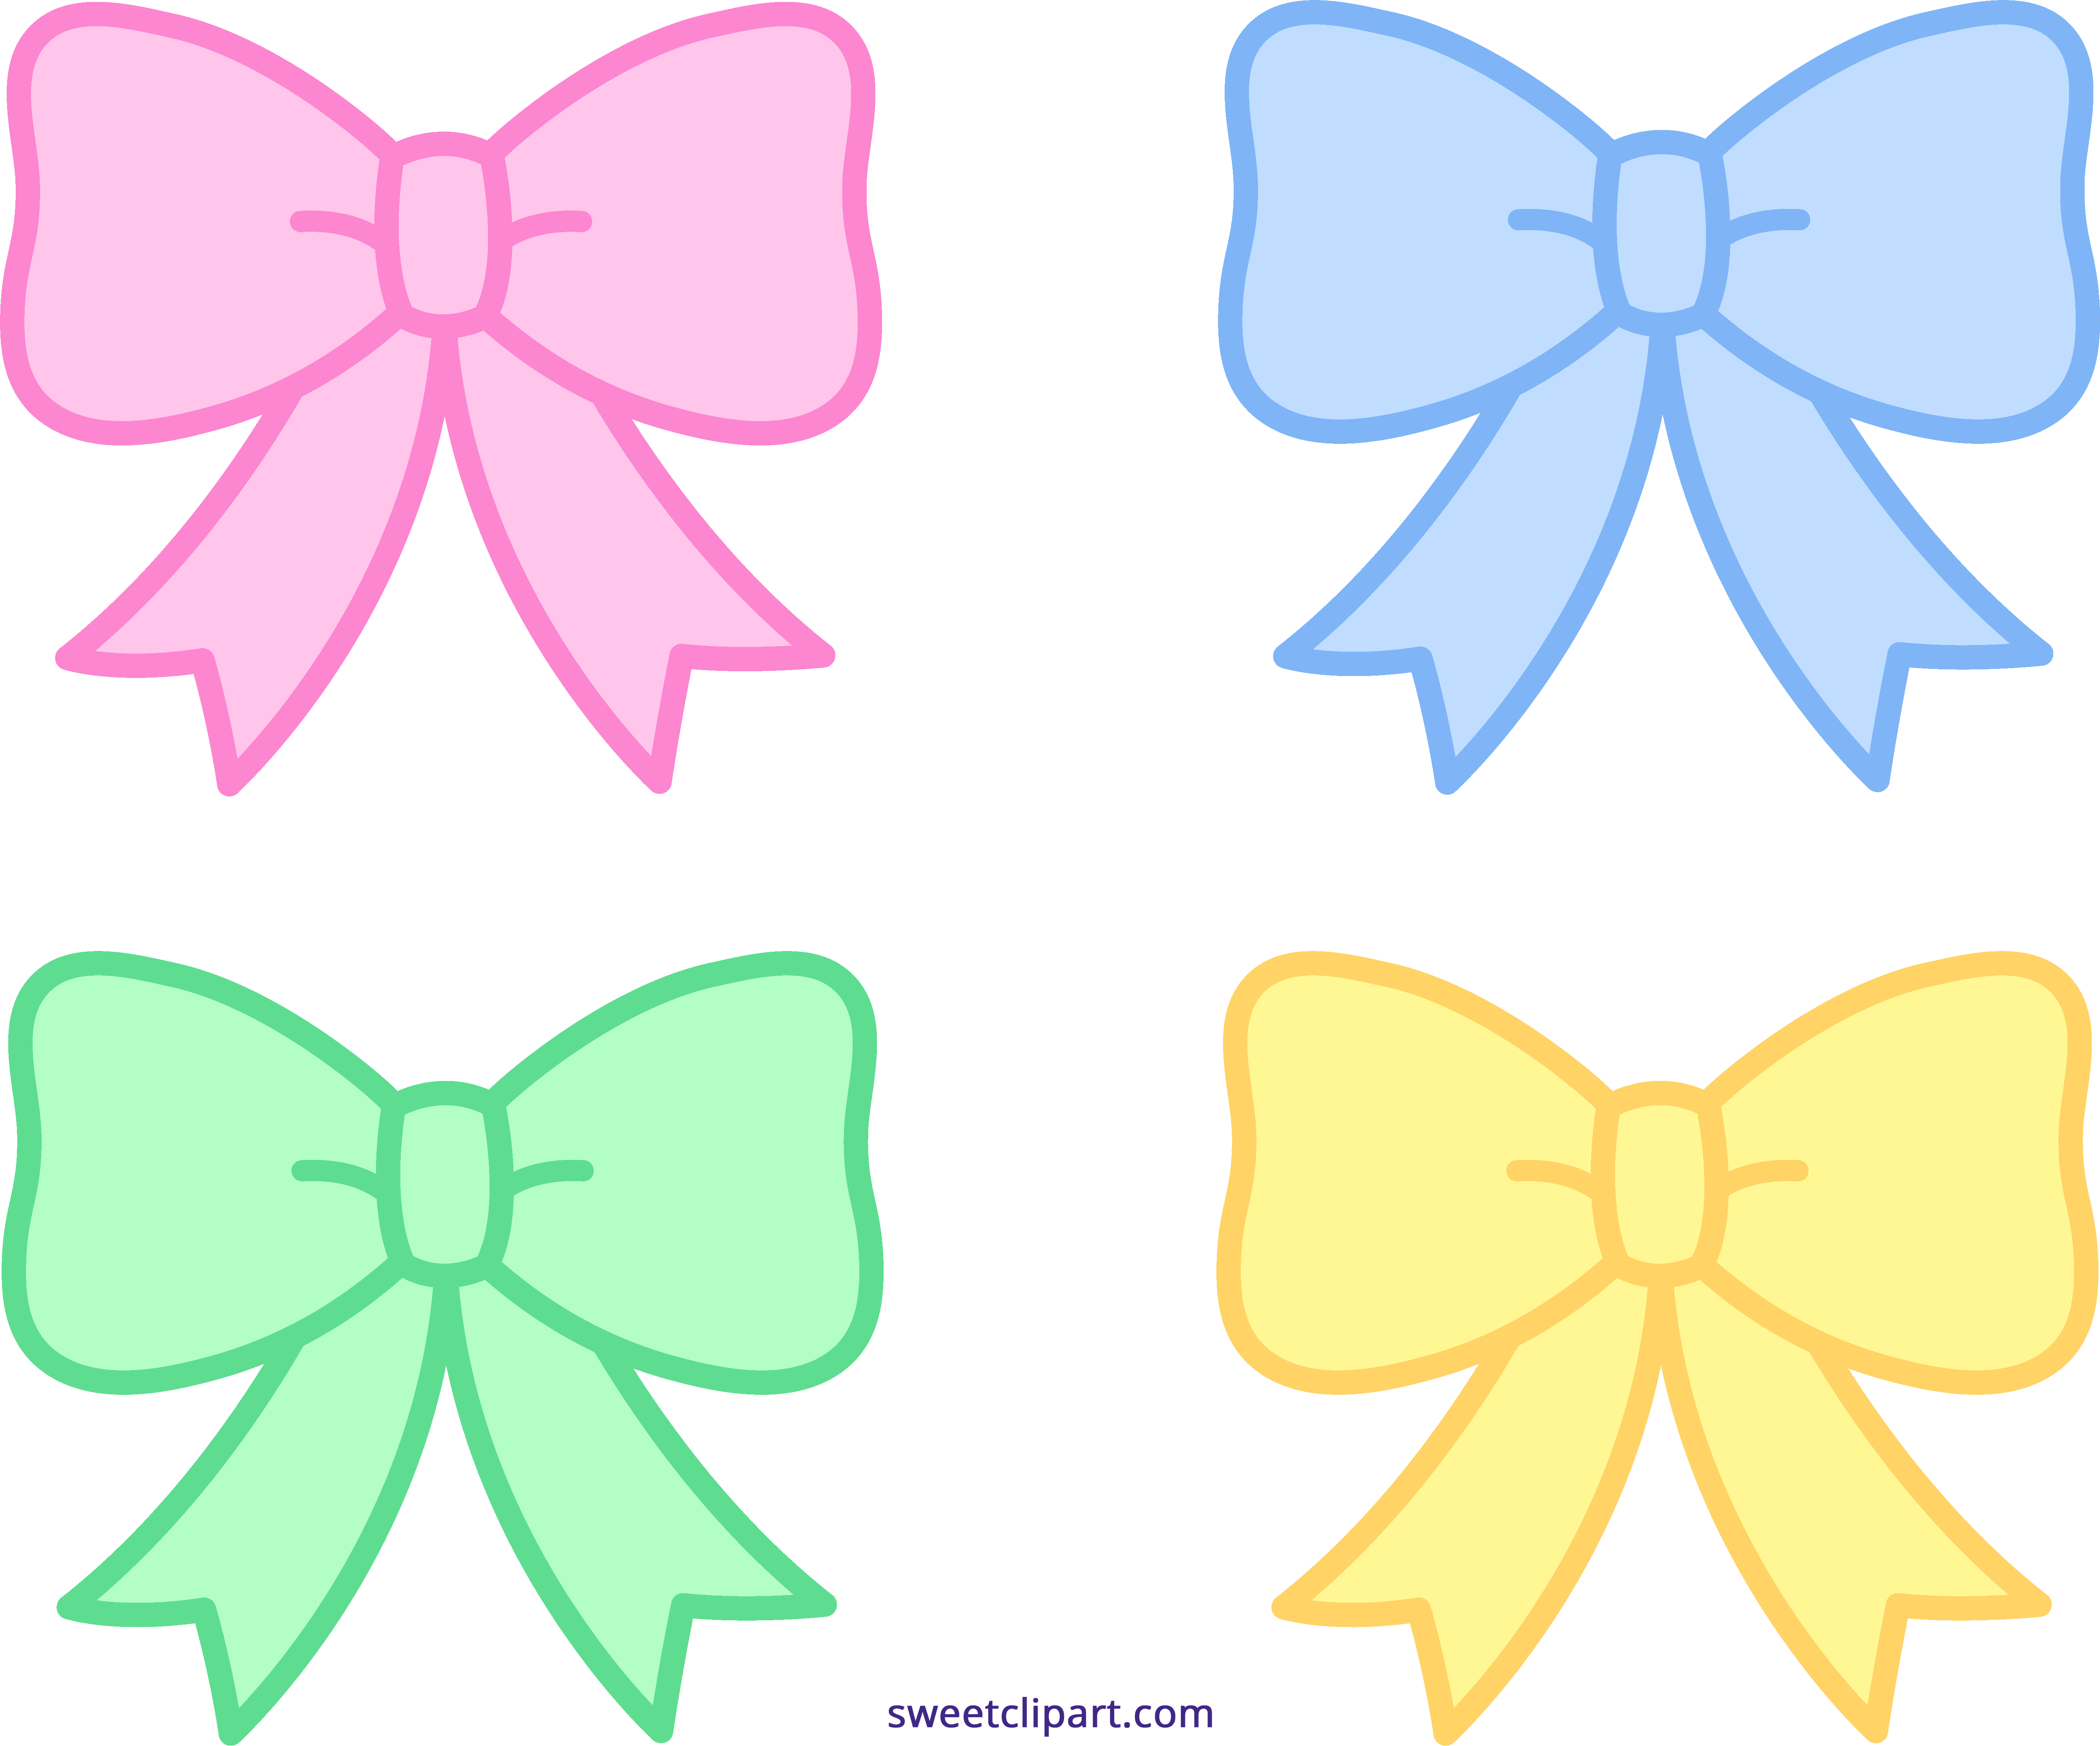 png transparent stock Cute pastel ribbons sweet. Bows clipart object